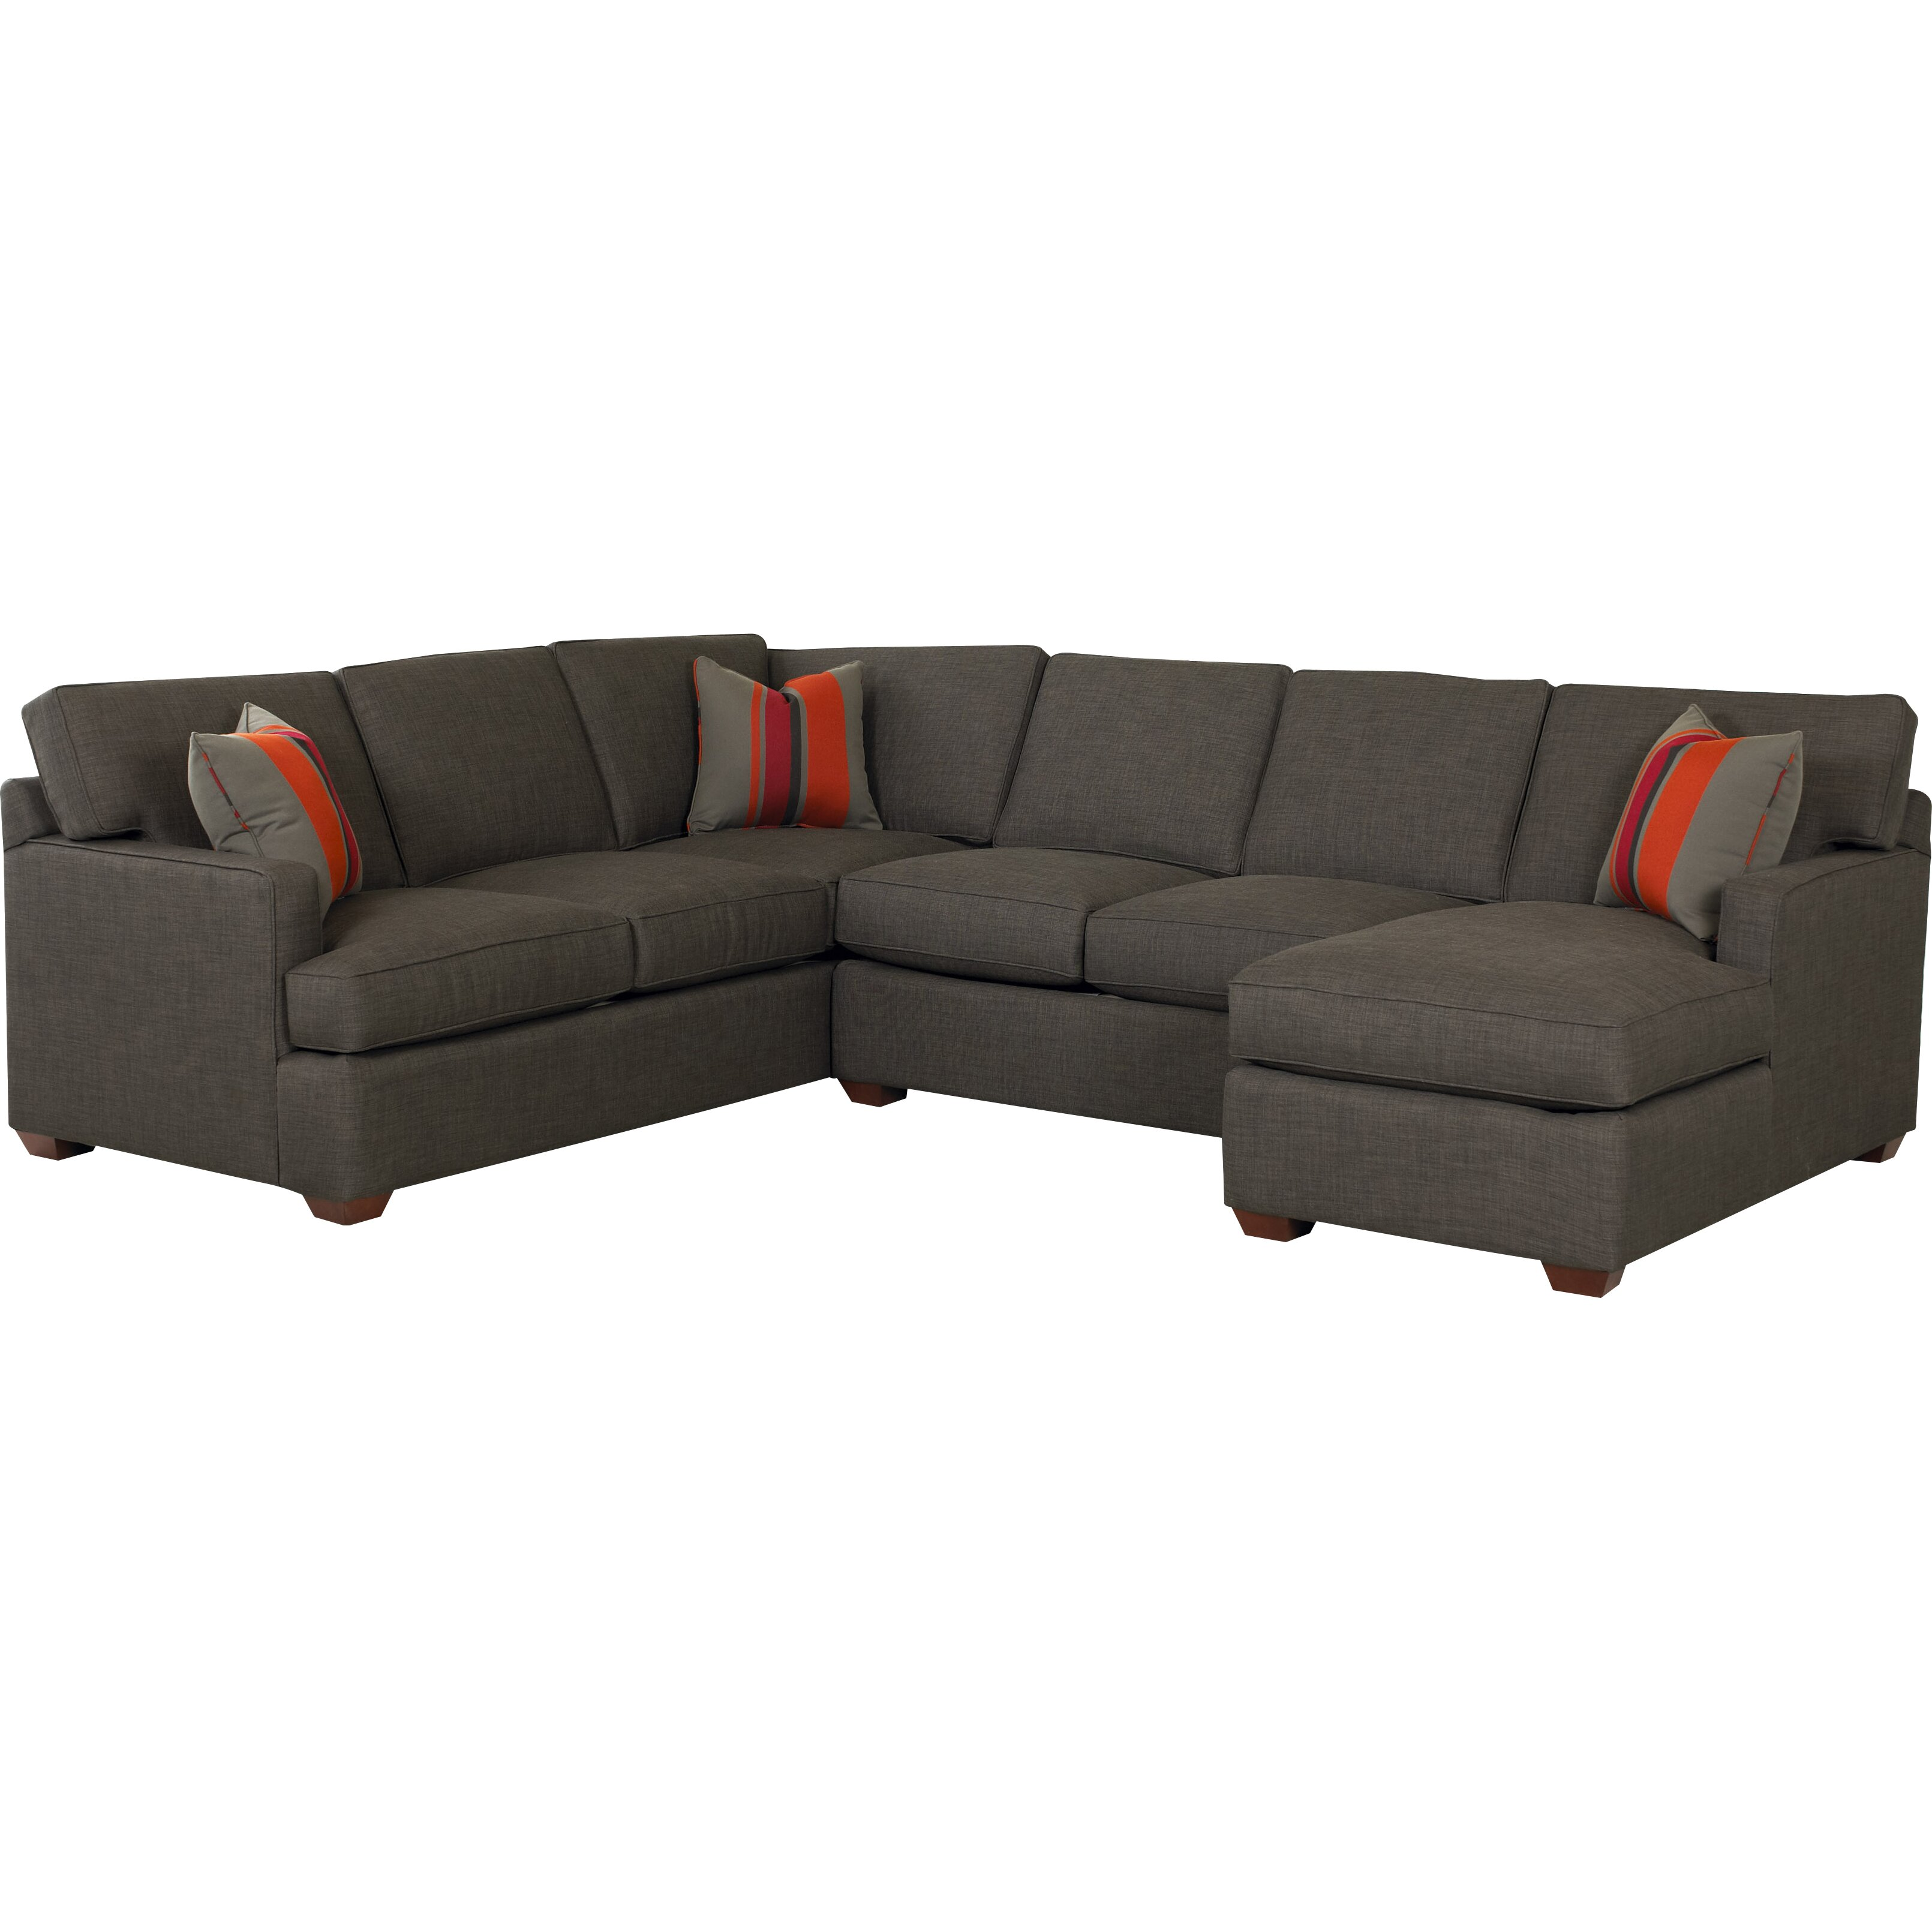 Klaussner Furniture Rory Sectional Reviews Wayfair